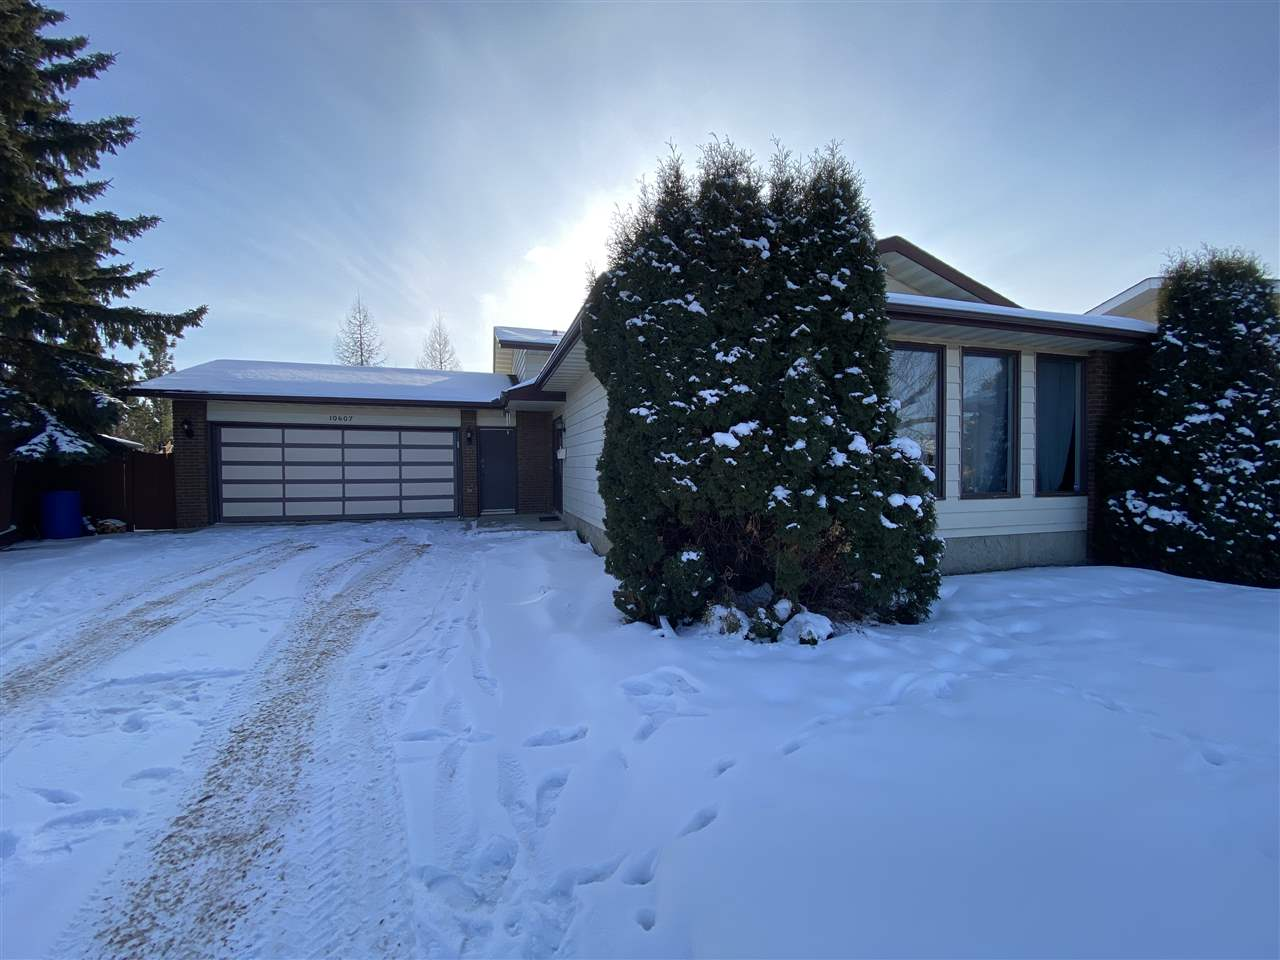 Well maintained 4 level split home in a convenient Ermineskin location! Fully developed on all levels with 3 + 1 bedrooms and 2.5 baths. Plenty of space for a growing family. Upgrades include newer shingles, furnace, hot-water tank, central air conditioning. Features an oversized Dbl attached heated garage with access from the 3rd level. Large living room and a dining room. Open style kitchen comes with ample cabinetry and breakfast nook. The upper level has 3 bedrooms, a full bathroom and a 2 piece en-suite. The lower level has a large family room, boasting a wood burning fireplace with brick facing. An extra bedroom and a 3 piece bathroom with a standing shower complete the third level. The basement is fully finished with a huge entertainment room, a laundry/utility room and a storage room. Fully fenced and landscaped with a  South facing backyard. Walking distance to schools, park and Century Park LRT stations. Close to Calgary Trail and South Common.